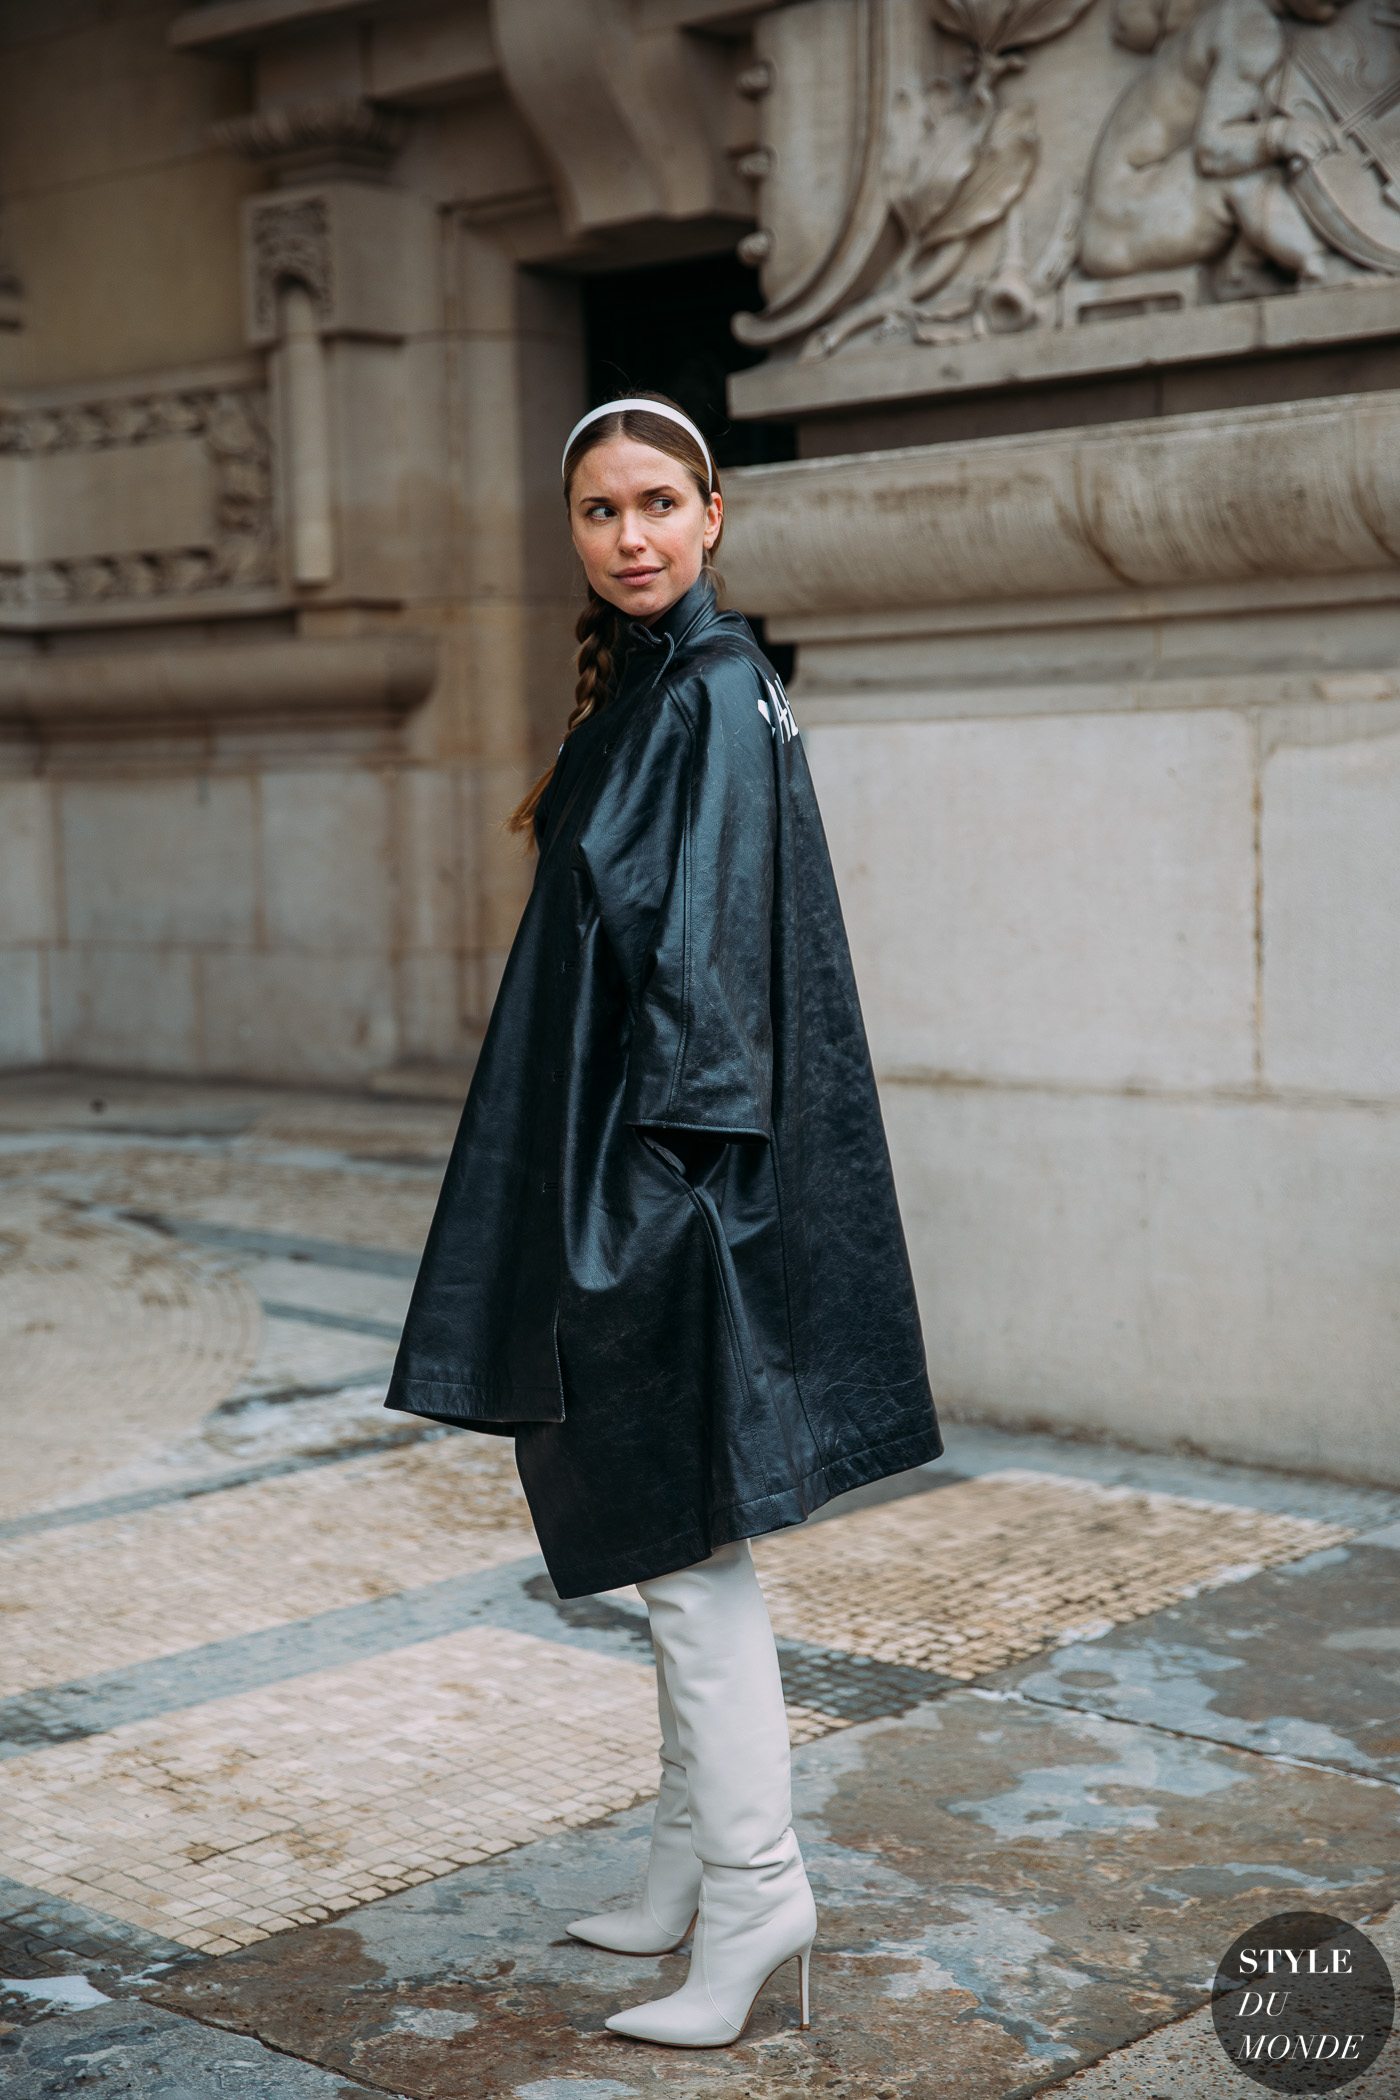 Pernille Teisbaek by STYLEDUMONDE Street Style Fashion Photography FW18 20180301_48A2095